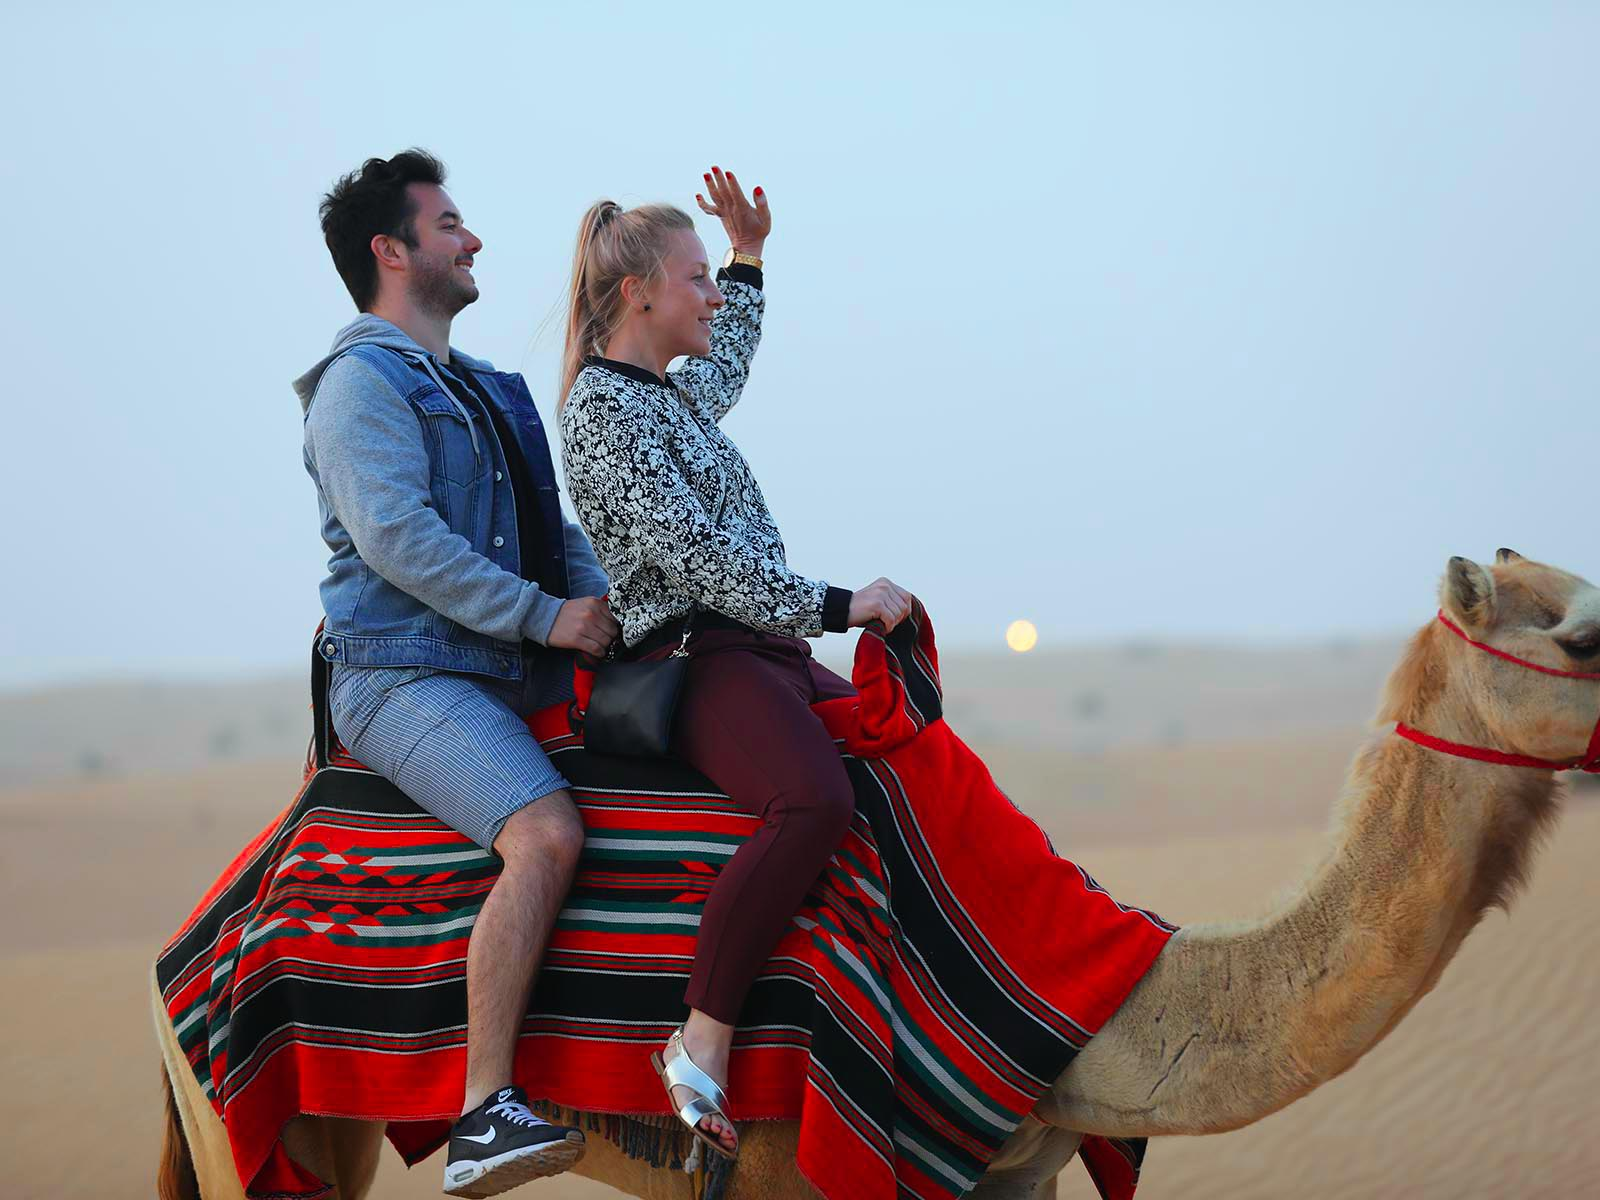 How To Enjoy The Best Camel Ride In Dubai